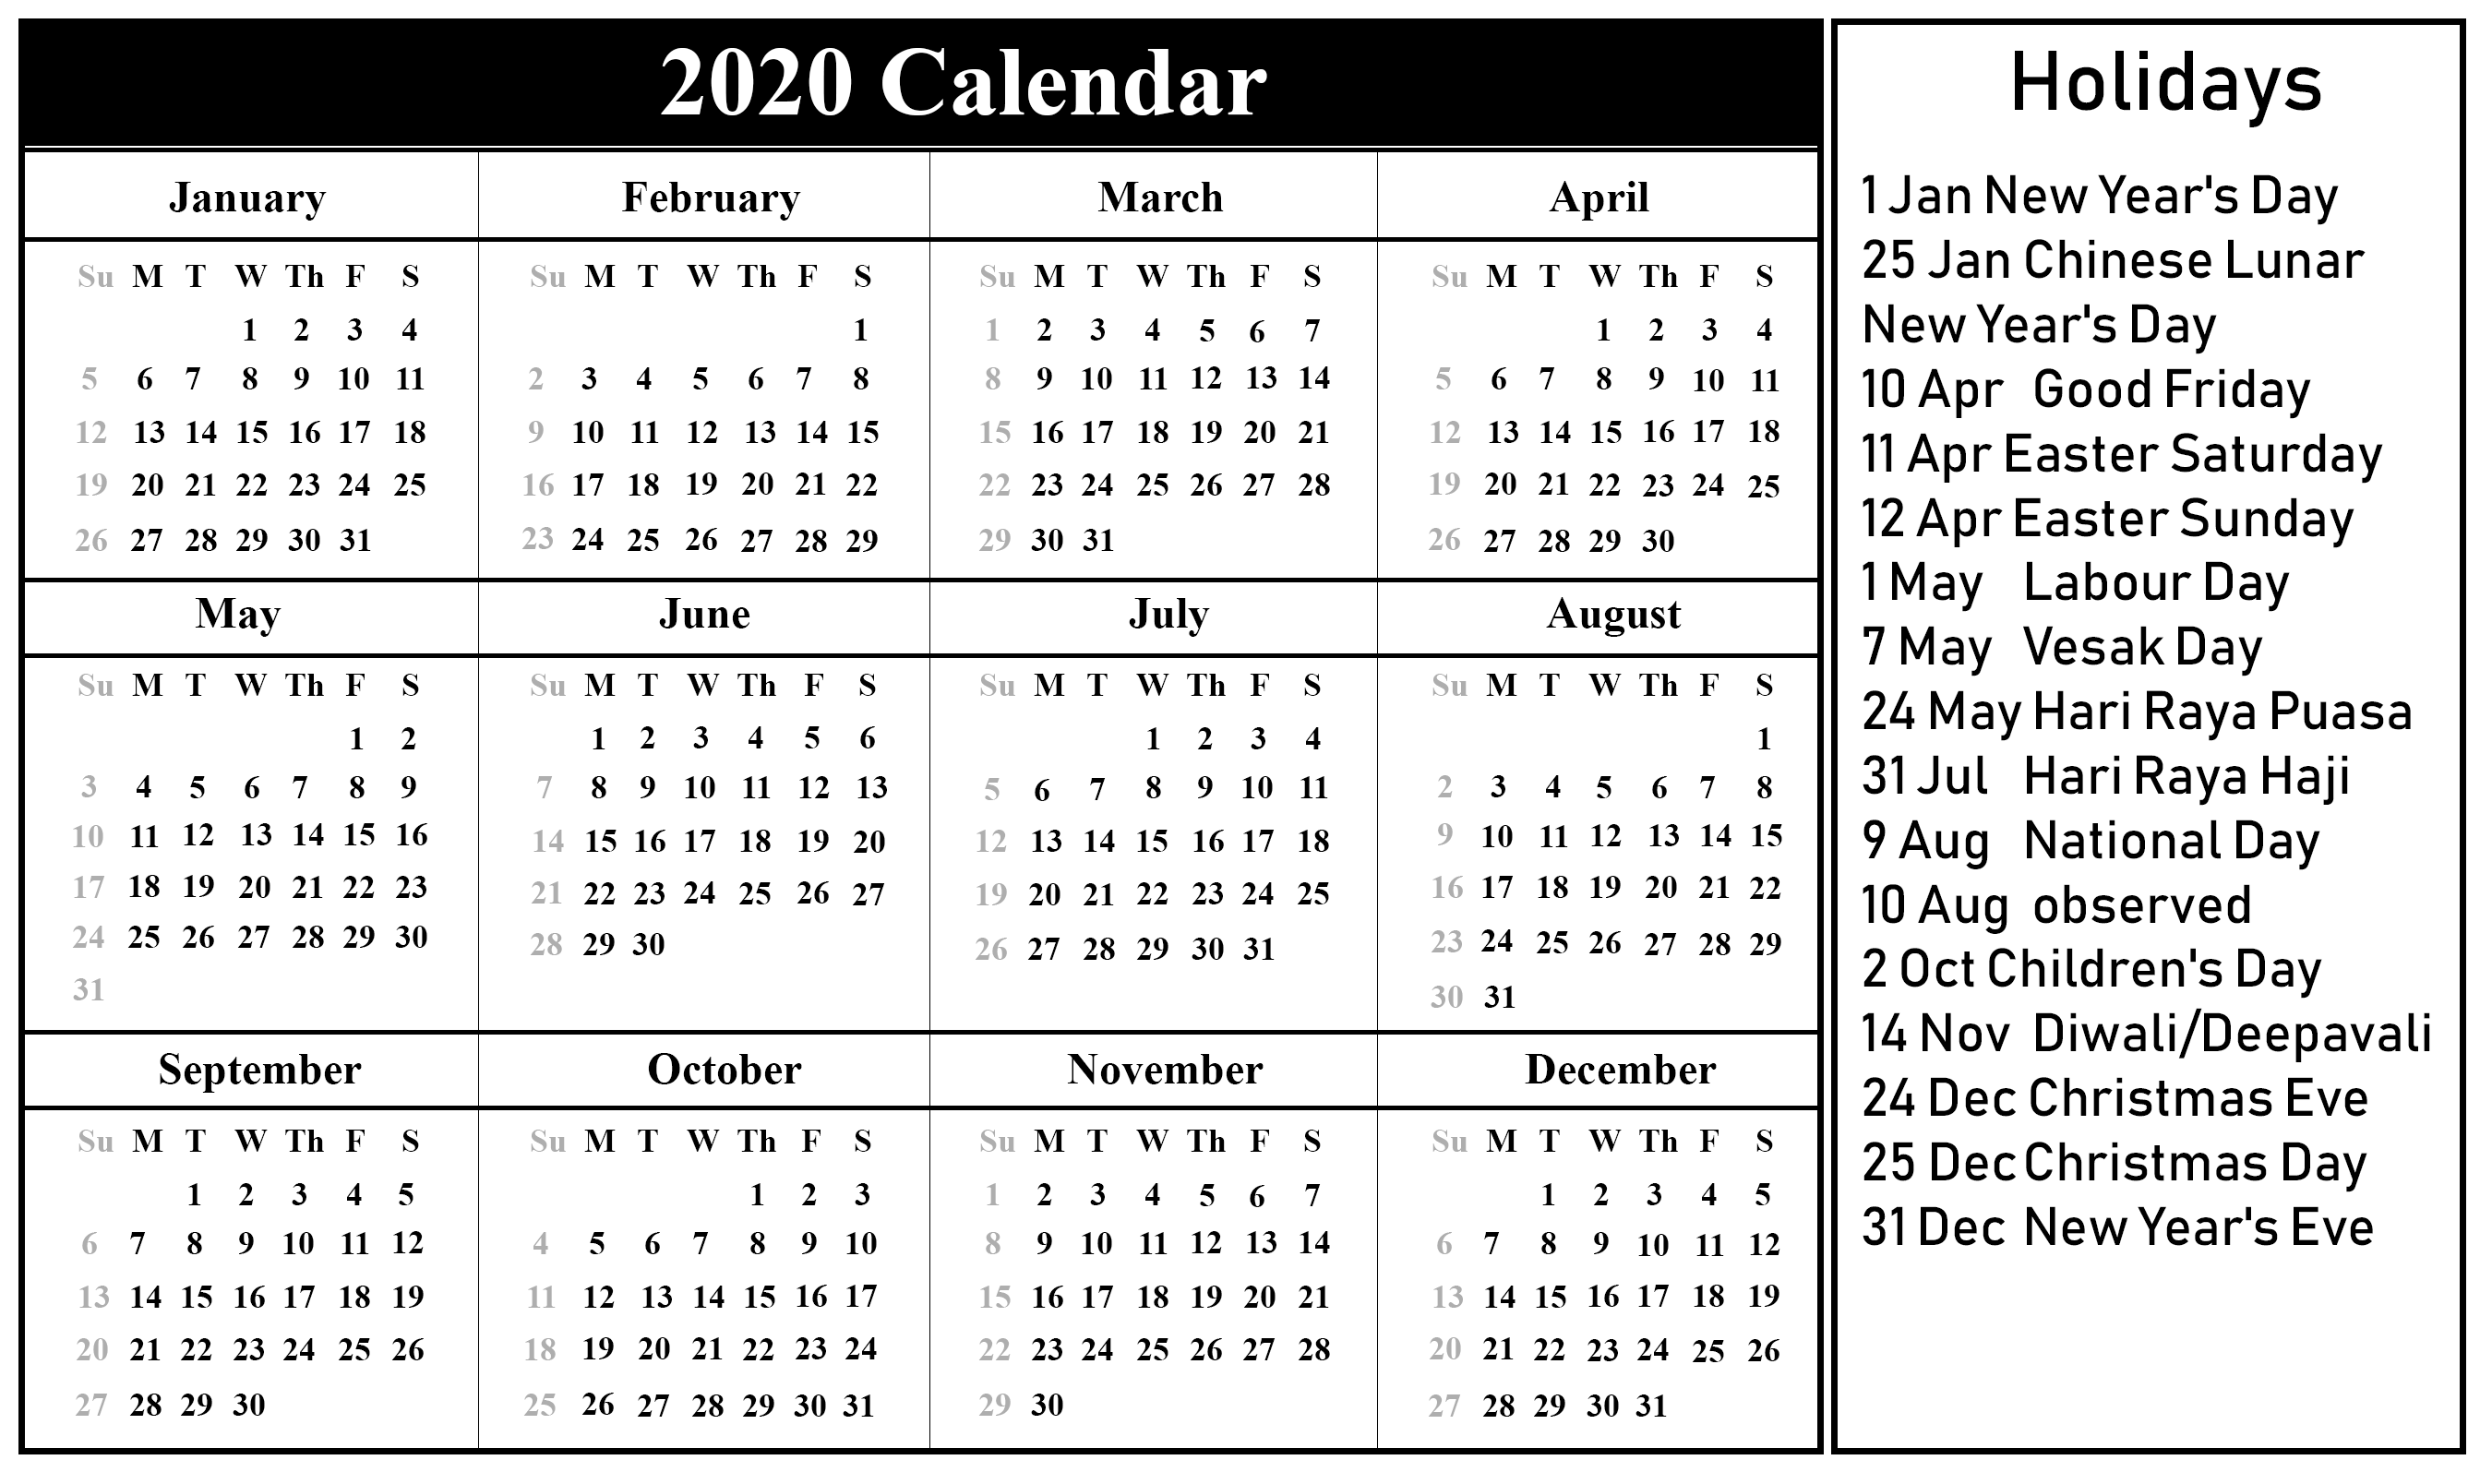 US Holiday 2020 Calendar